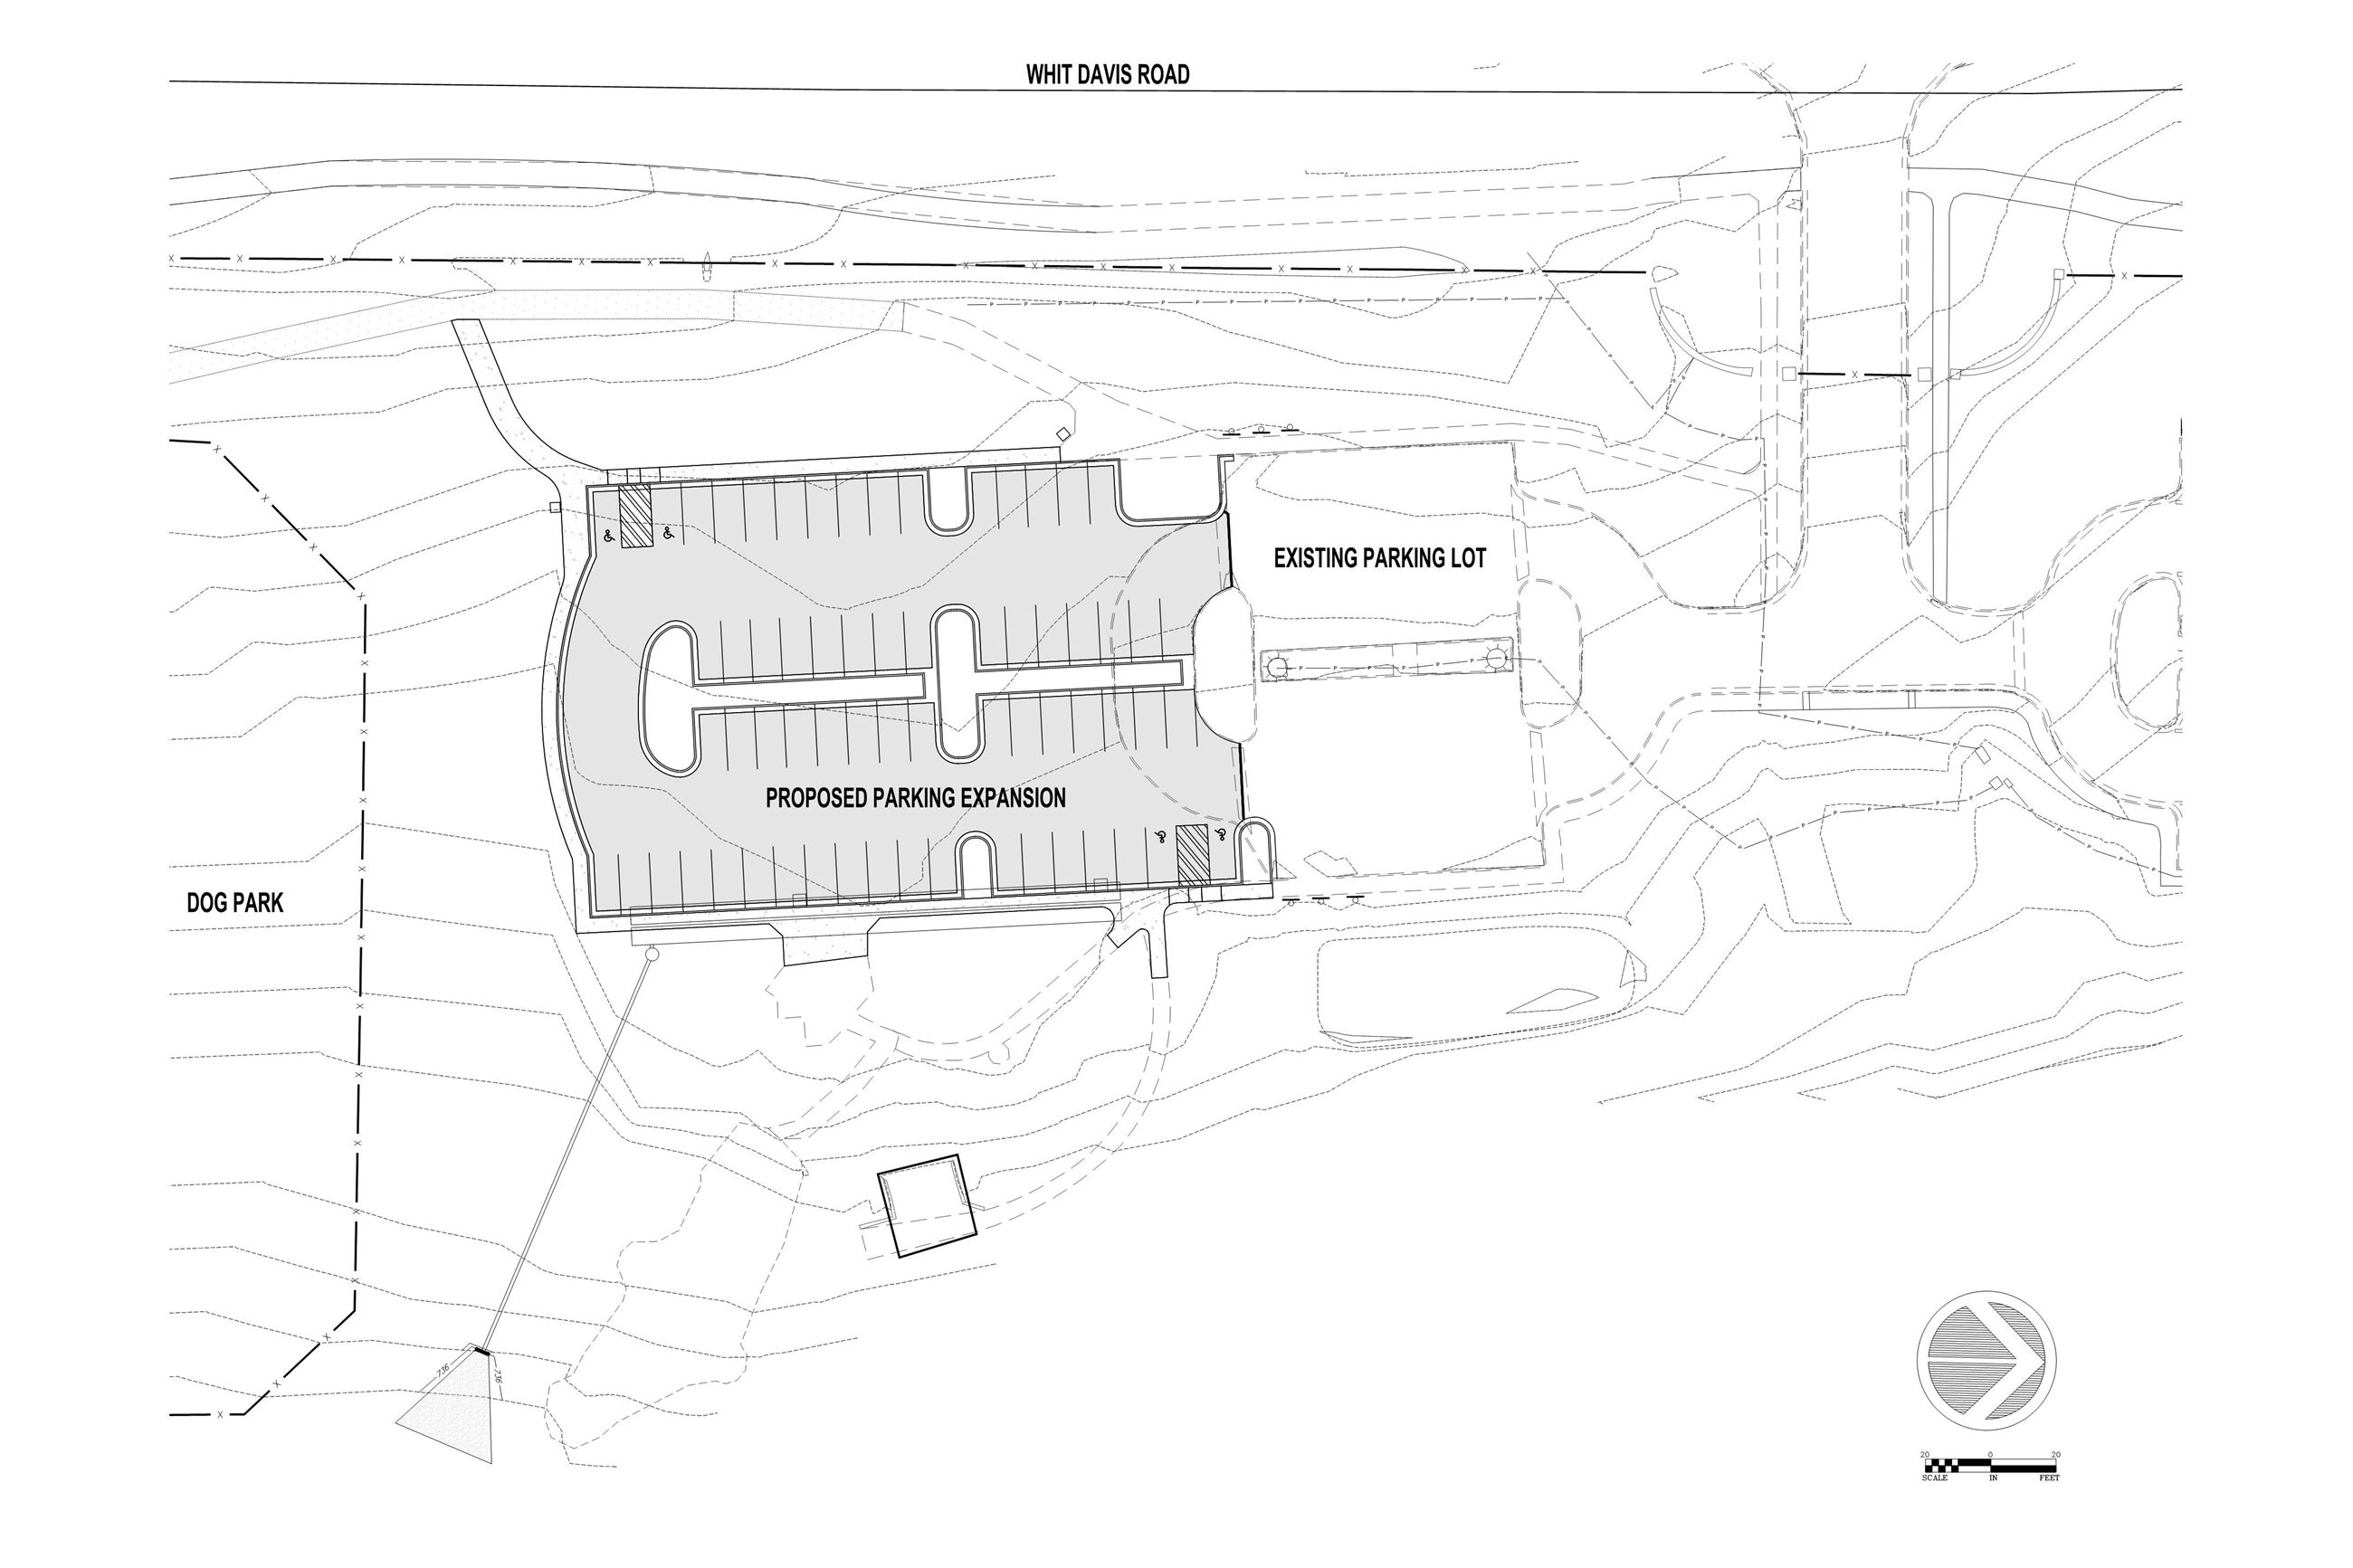 Diagram of the Whit Davis Parking Lot expansion project at Southeast Clarke Park.